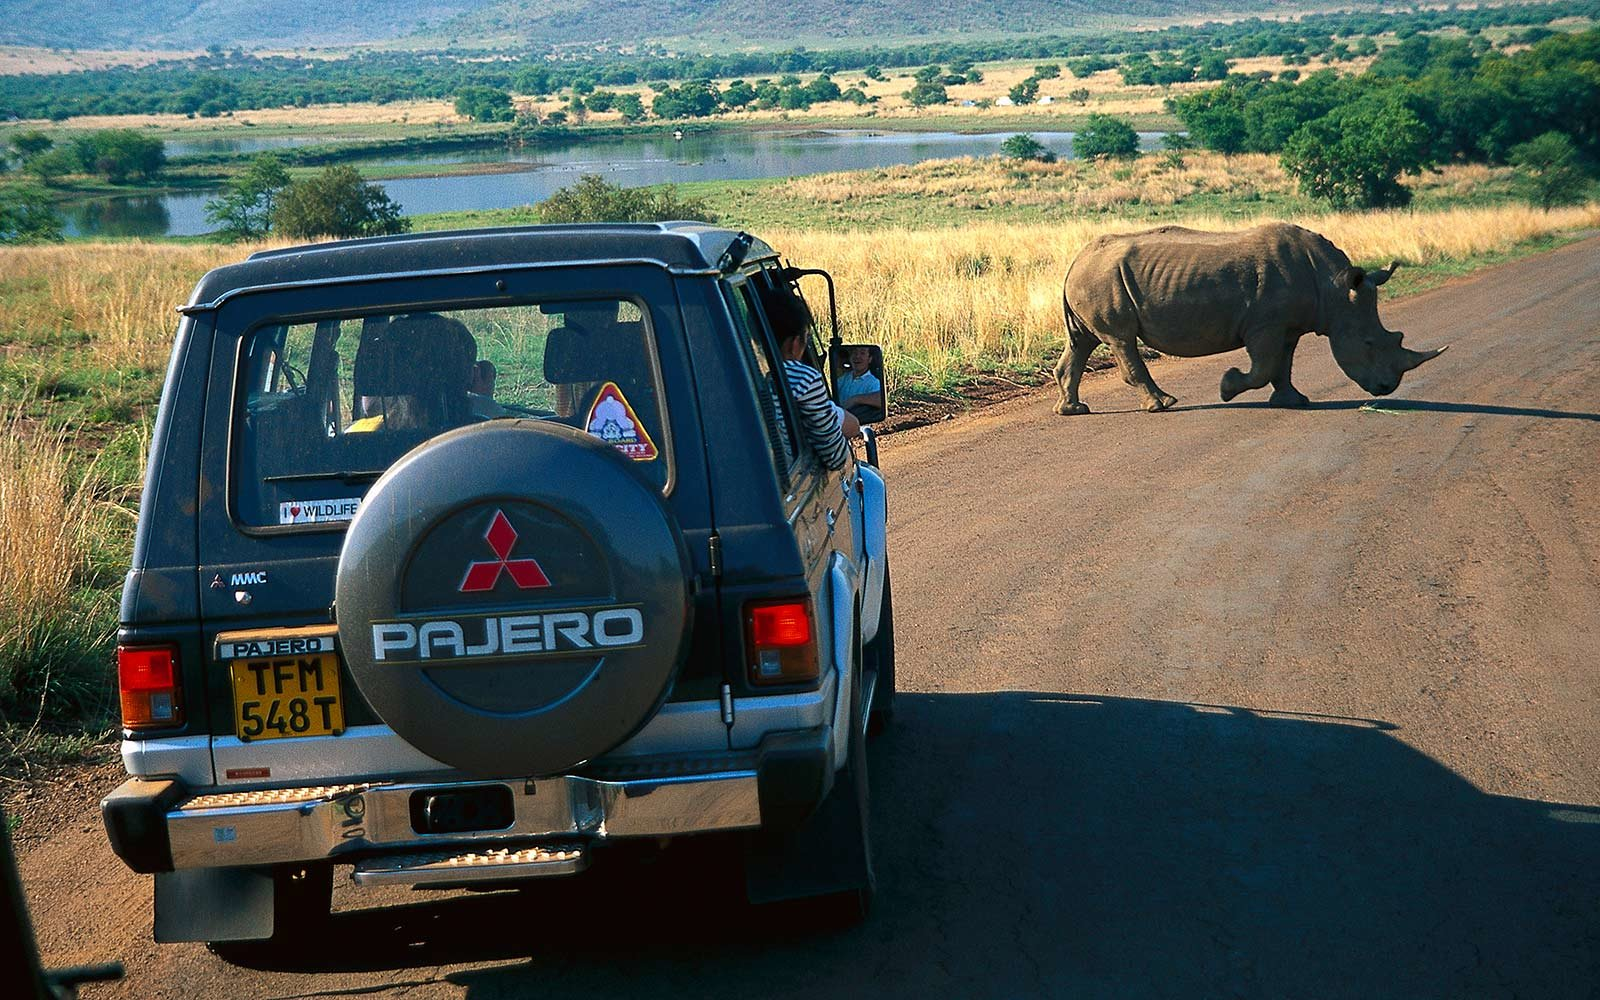 6. Go on a Safari in South Africa